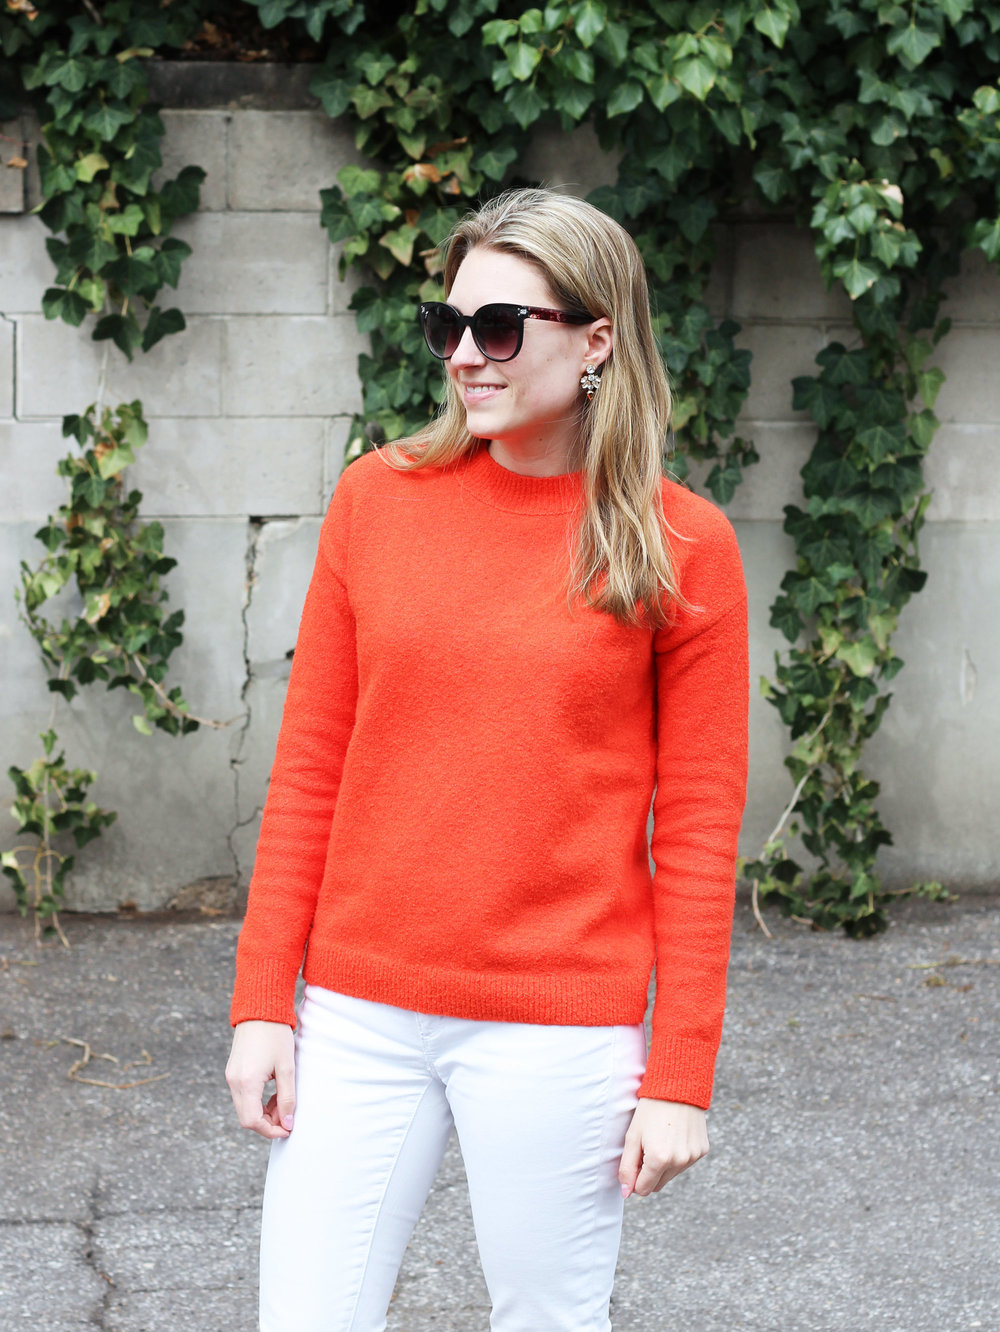 Bright red sweater outfit for spring — Cotton Cashmere Cat Hair 4c2725e9e